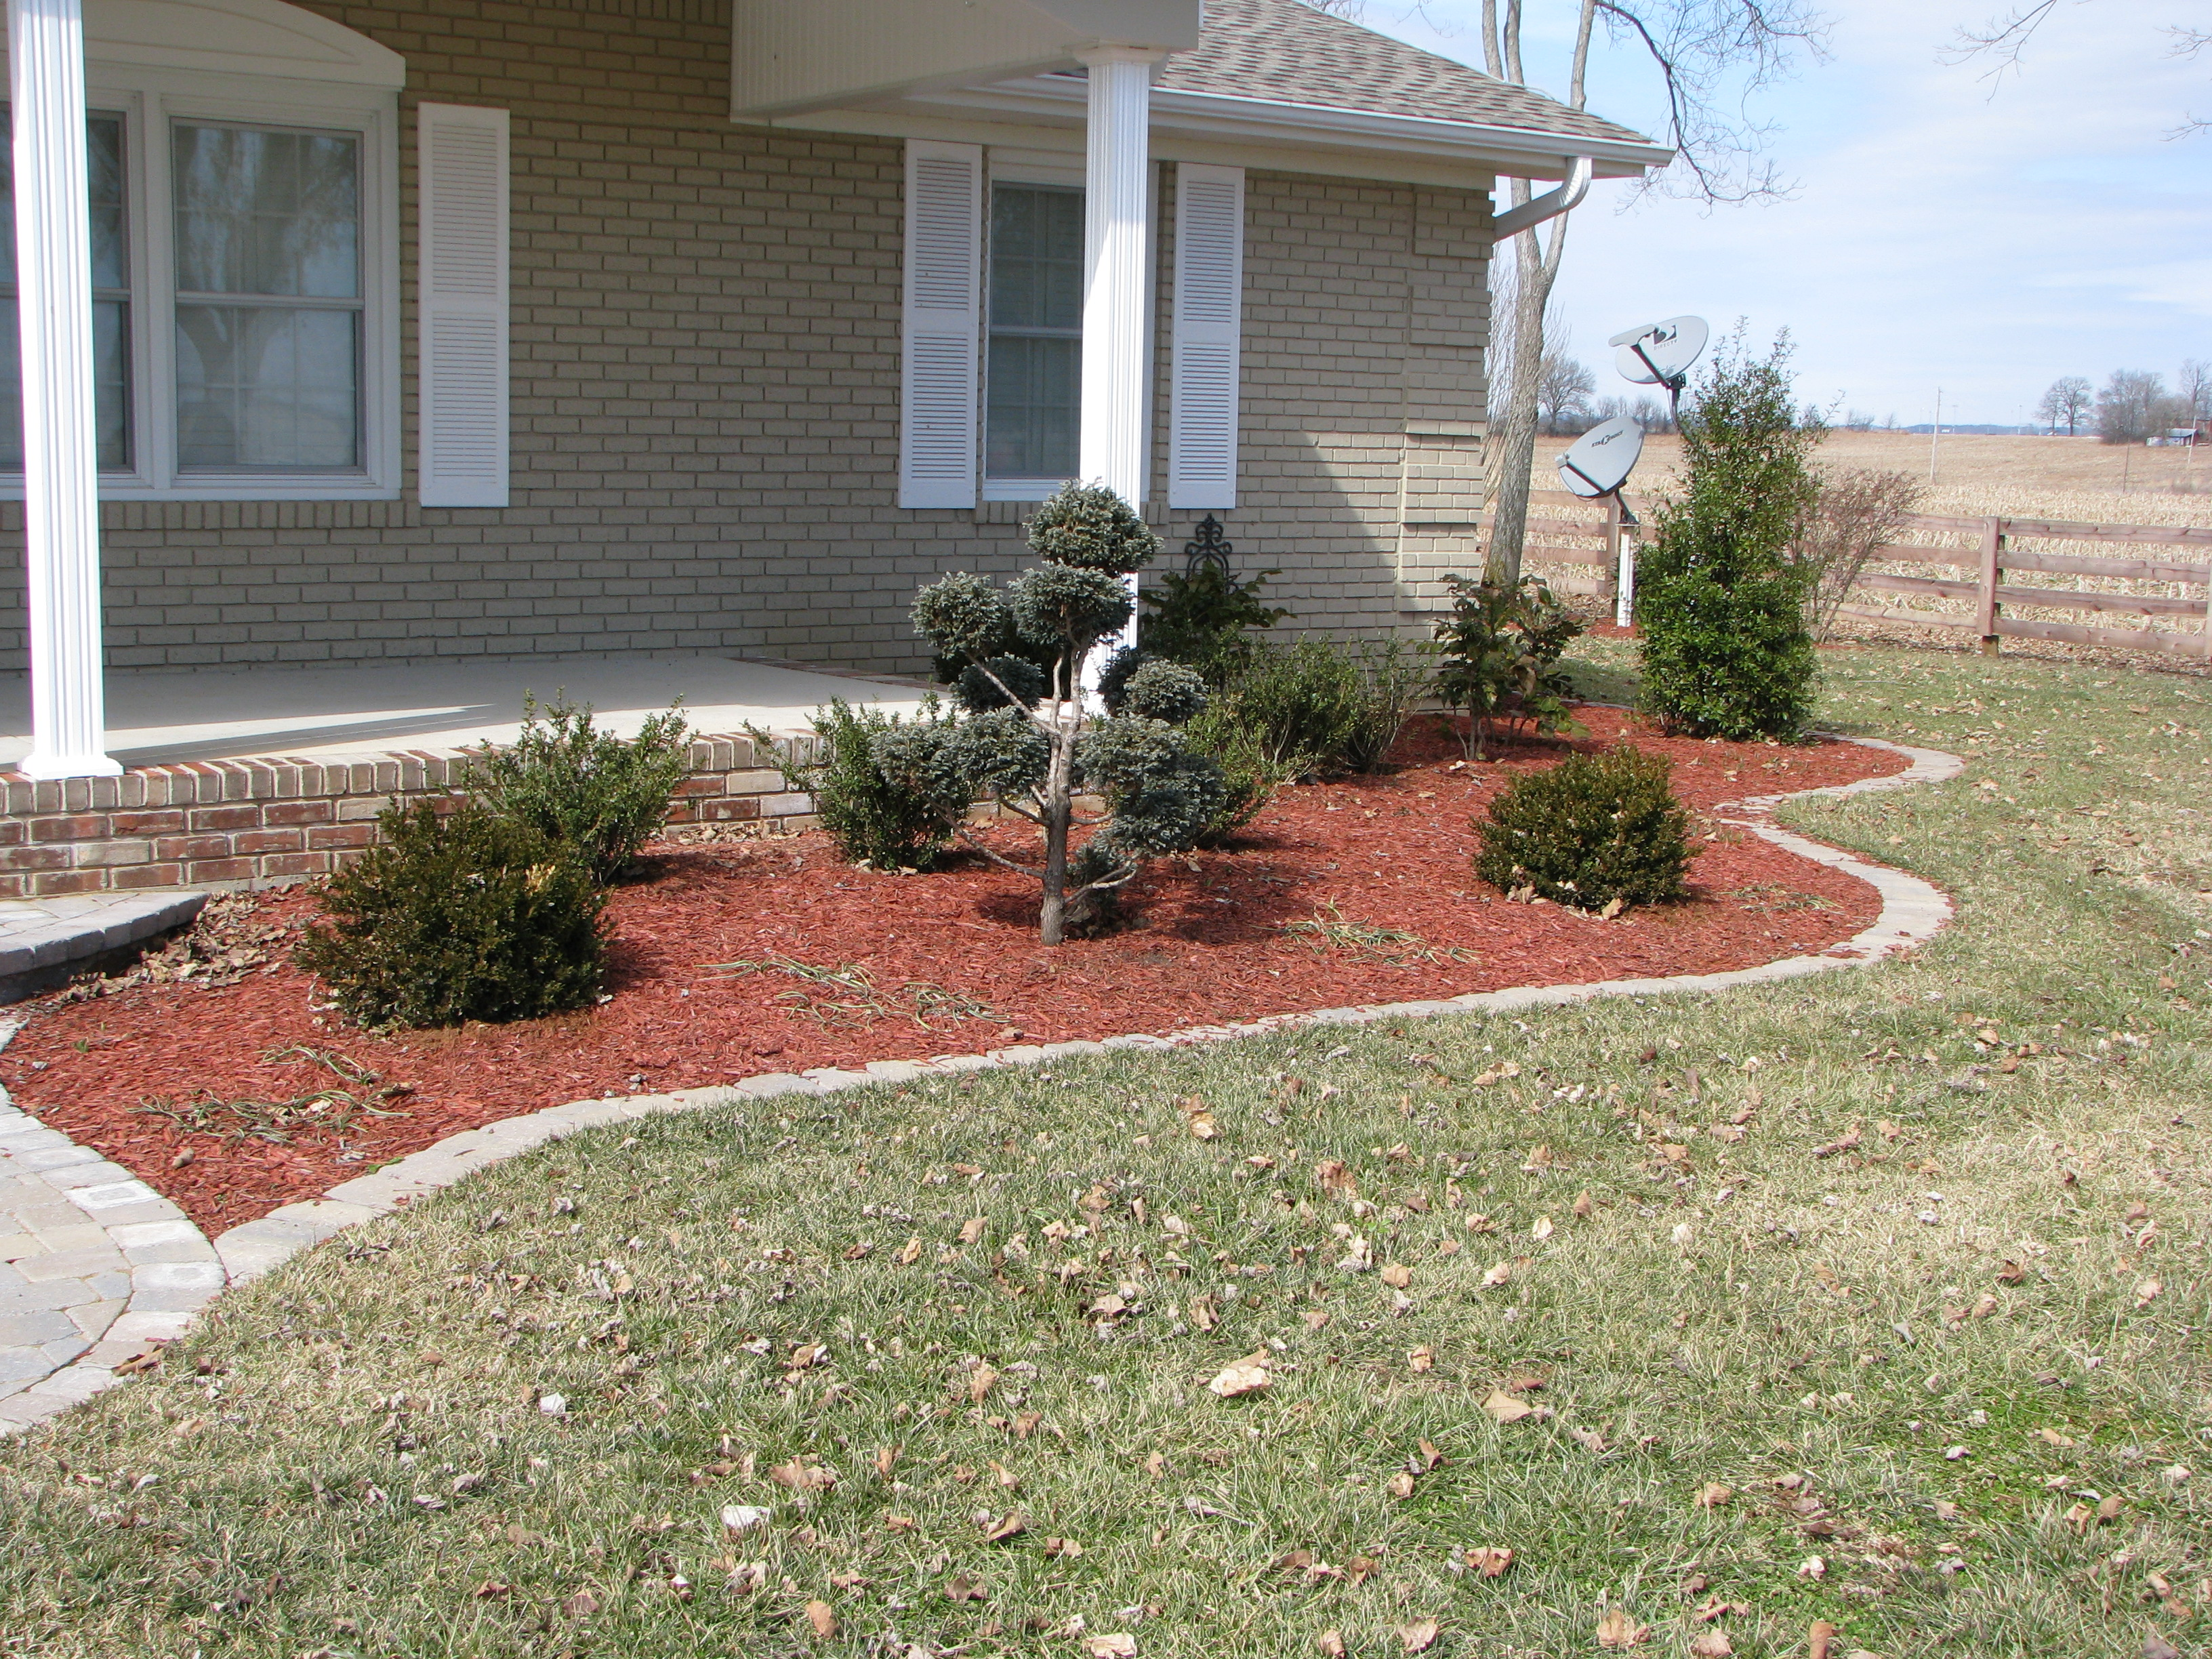 Landscaping_Curbing_Unique_Hardscapes_Kentucky_23